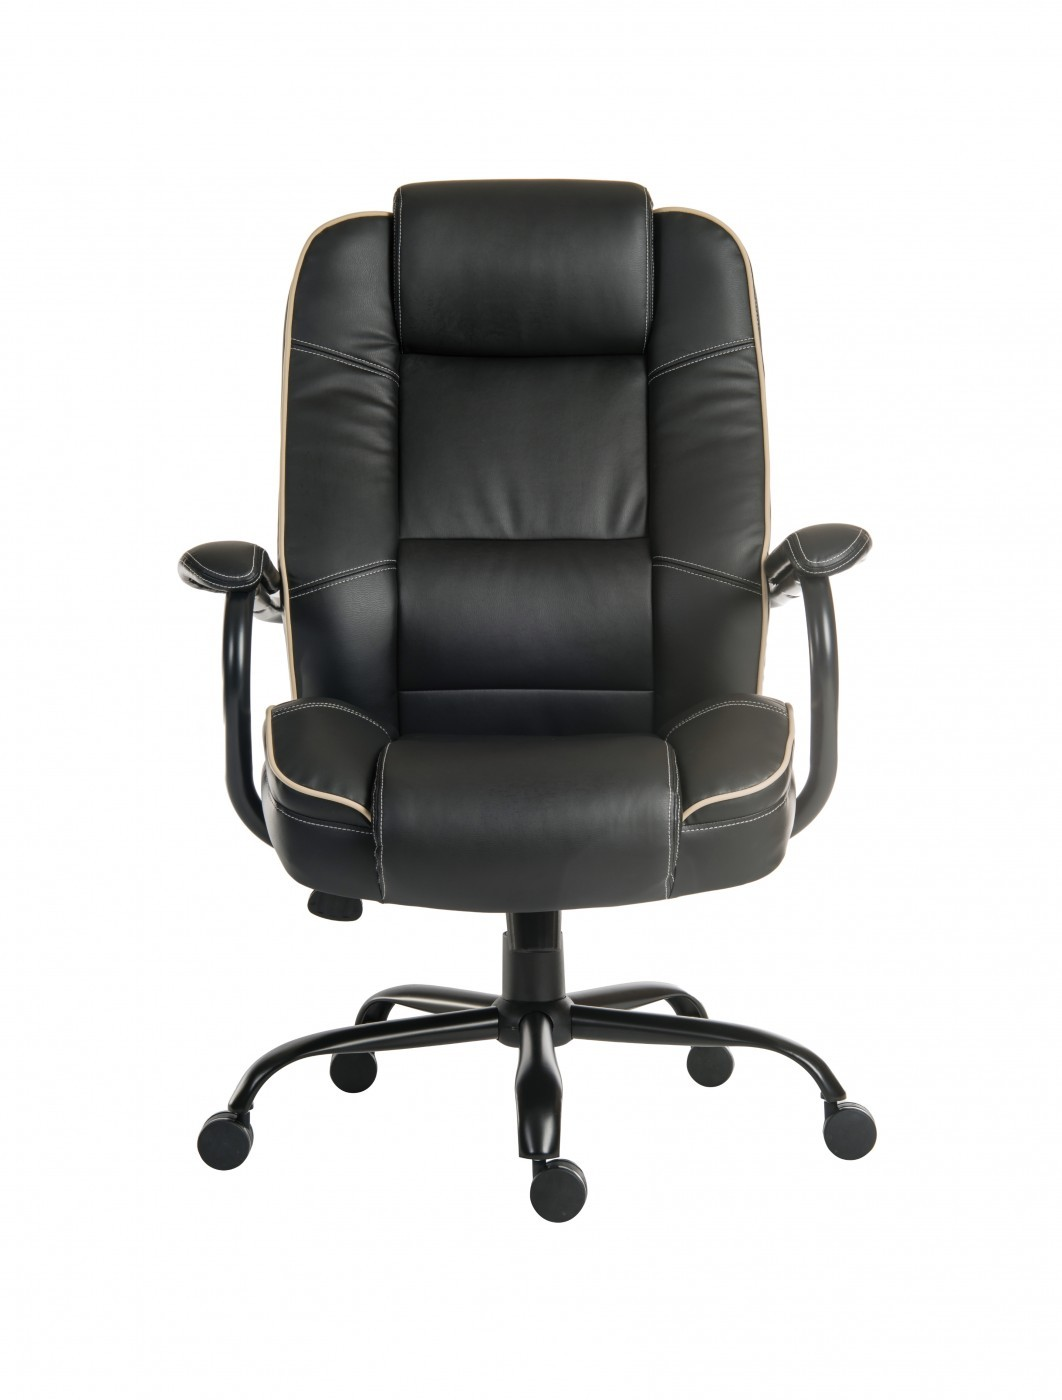 heavy duty gaming chair adirondack style plastic chairs uk teknik goliath duo office 6925blk 121